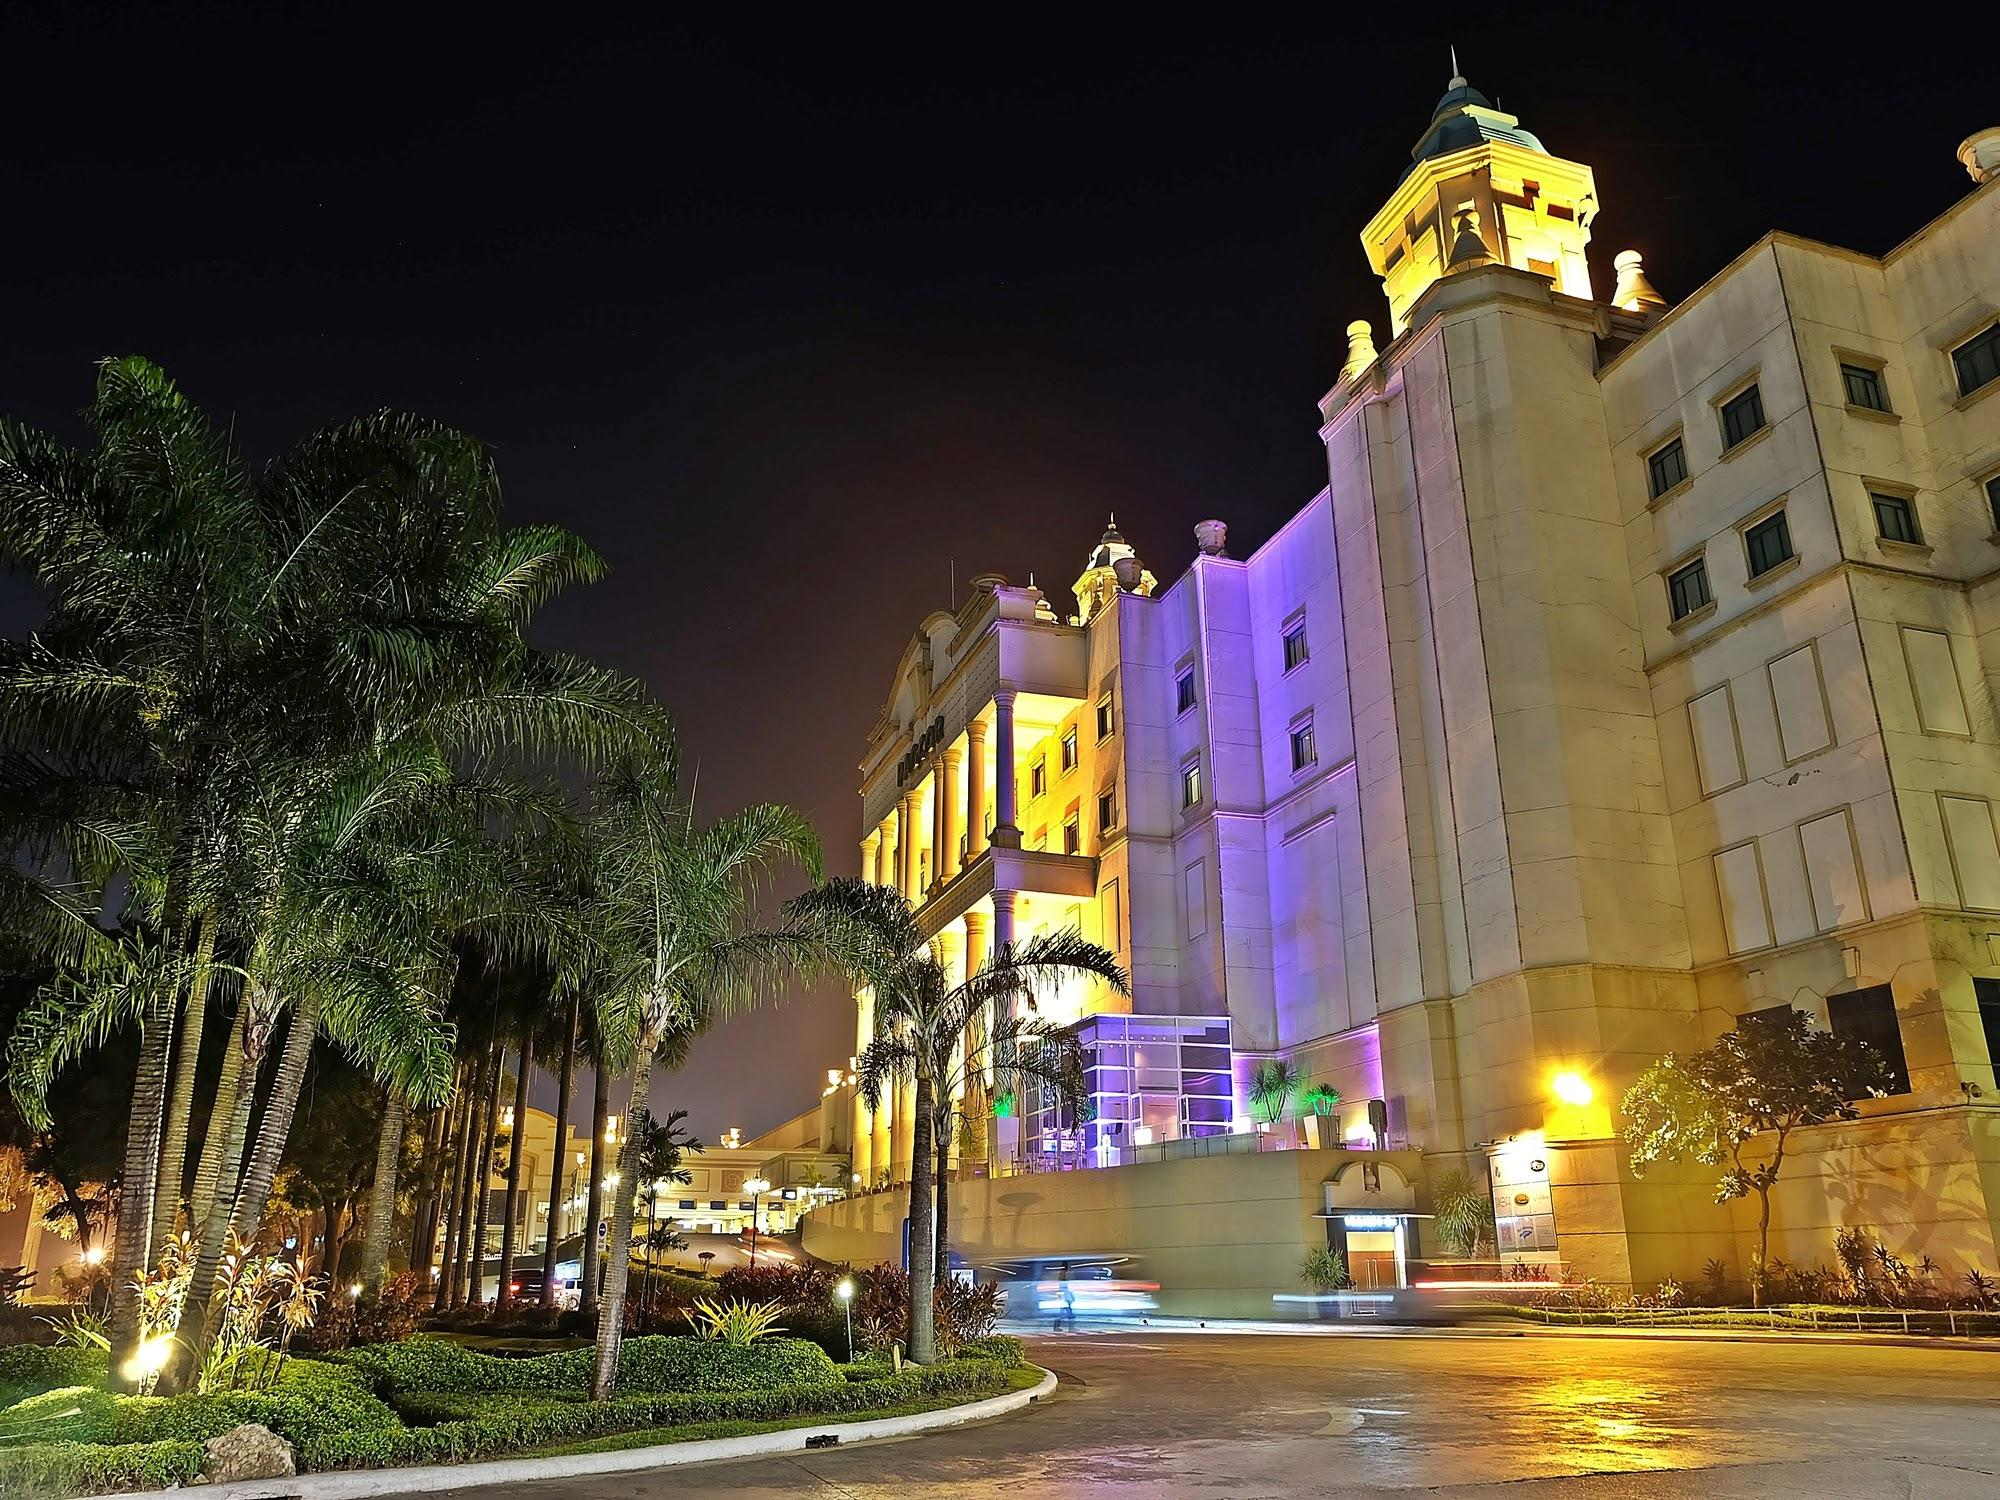 Waterfront Cebu City Hotel and Casino Cebu-Stadt